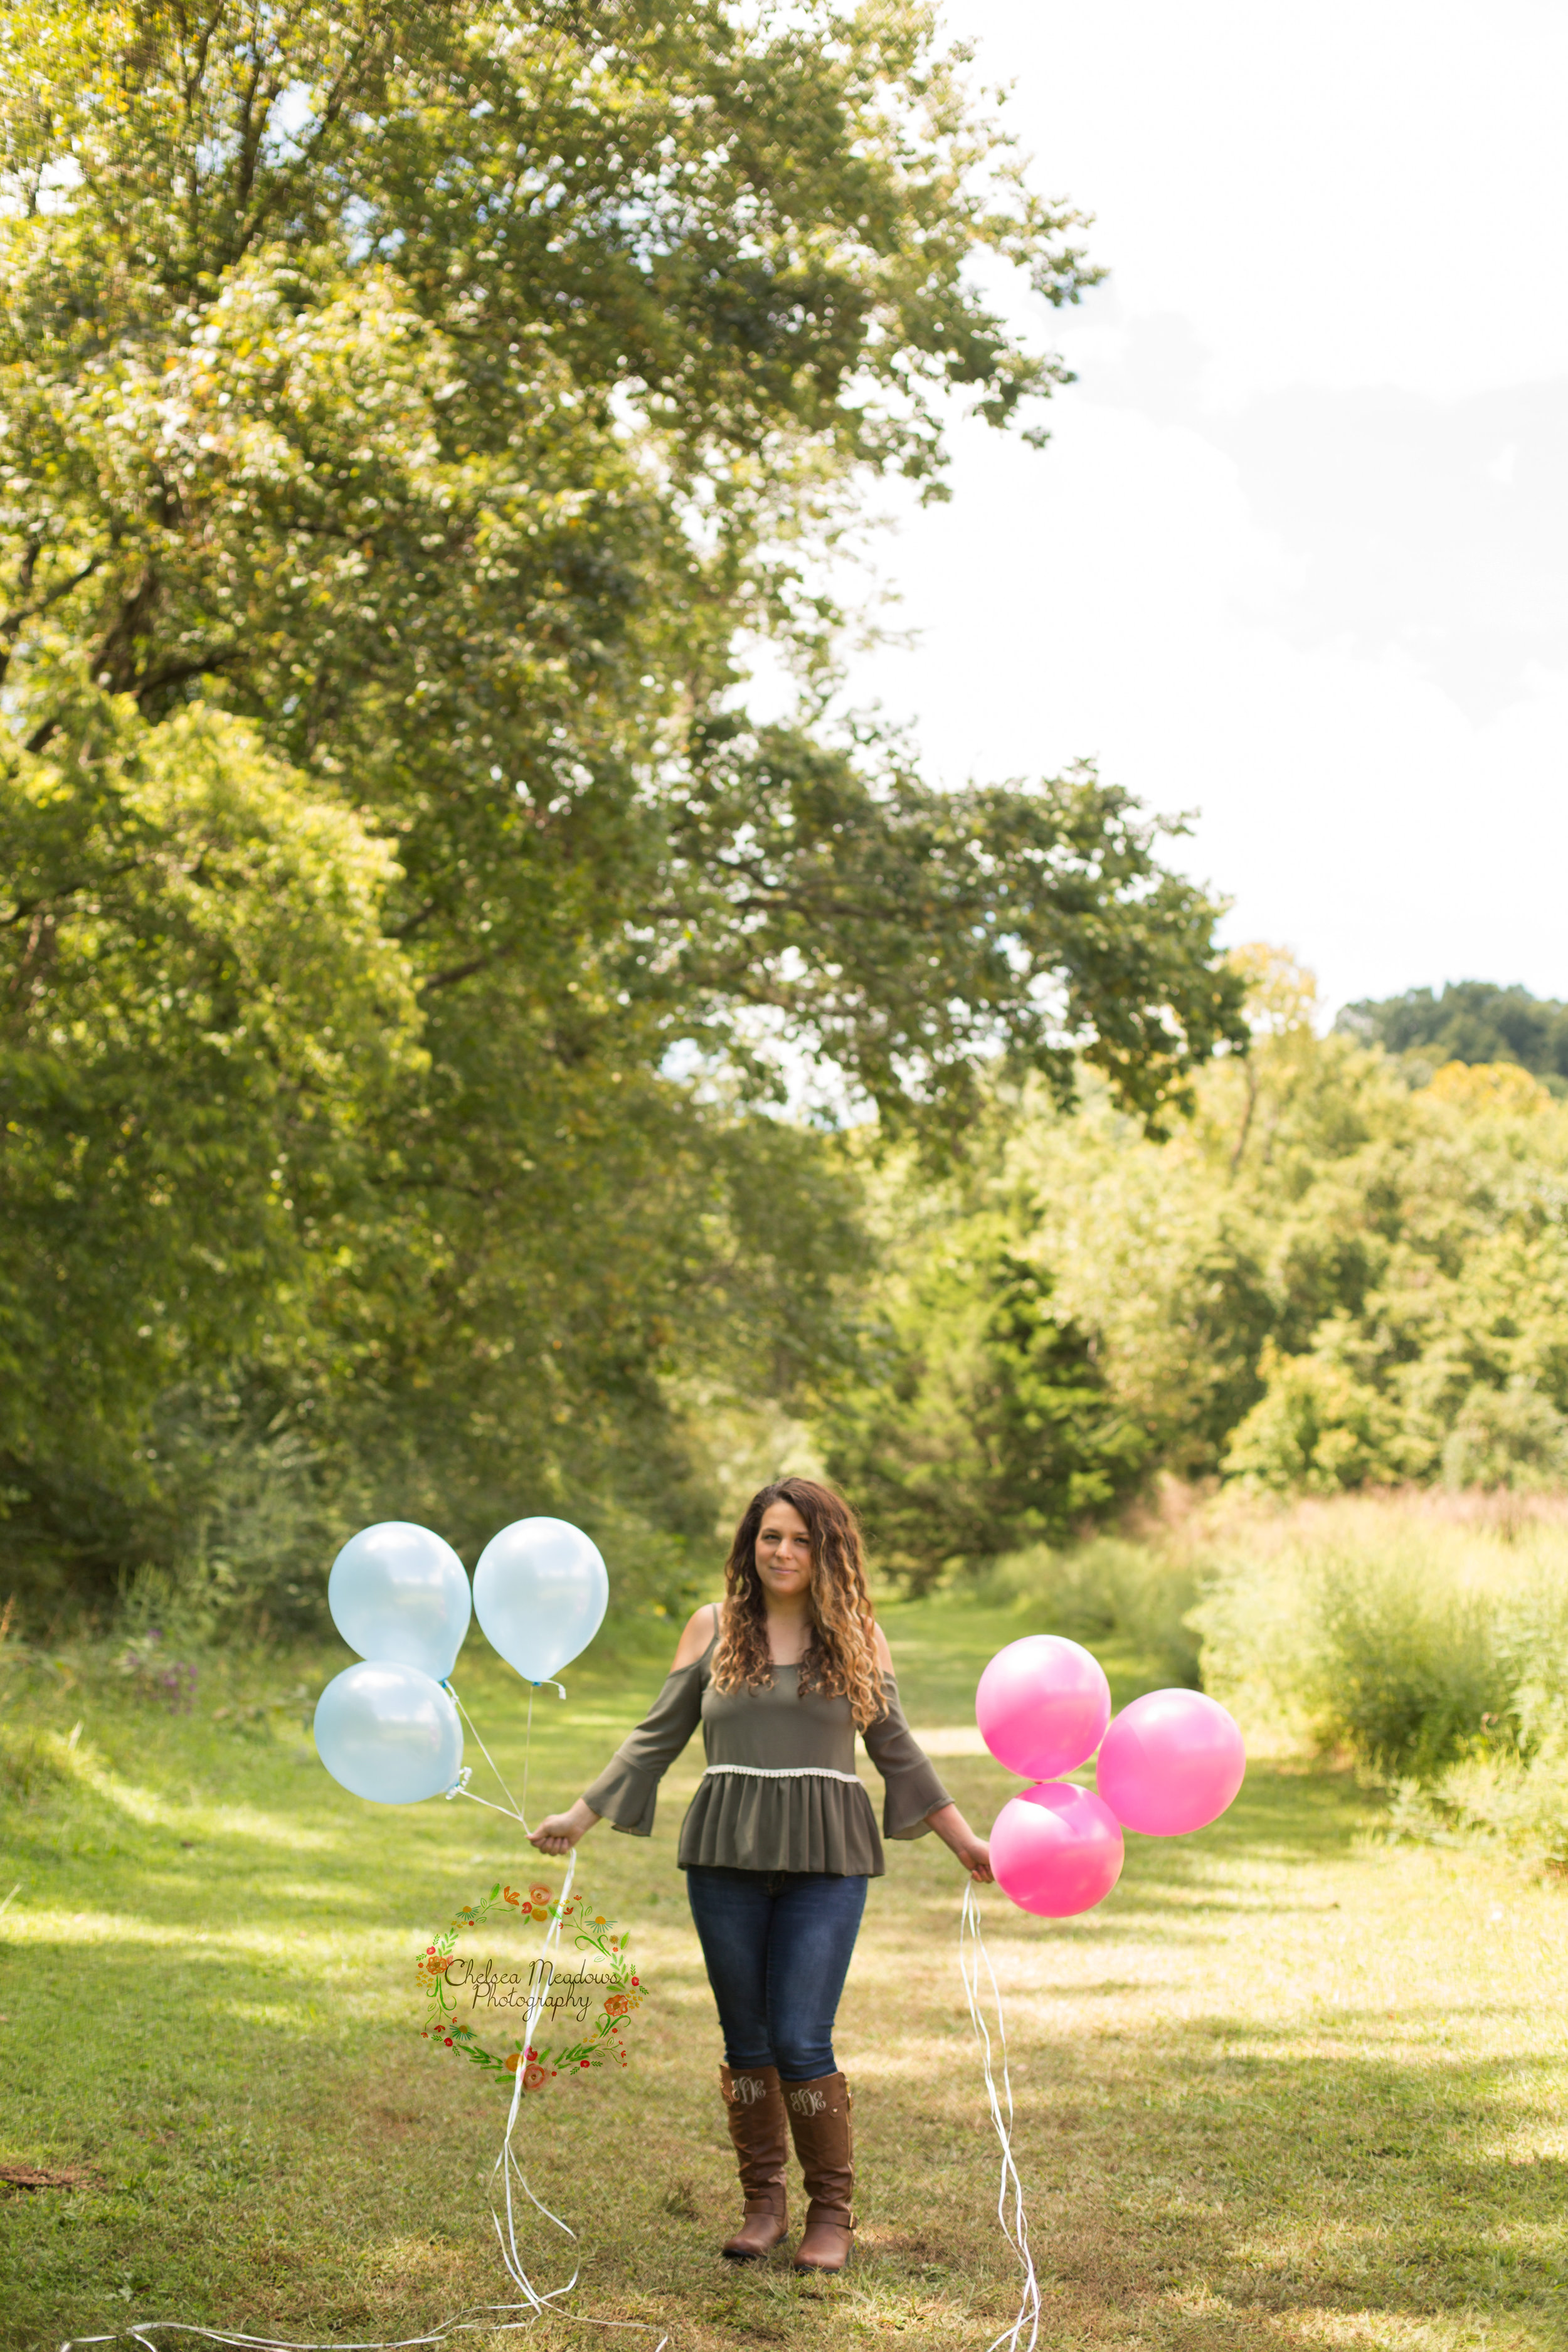 Jessica Gender Reveal - Nashville Newborn Photography - Chelsea Meadows Photography (5)_edited-1.jpg